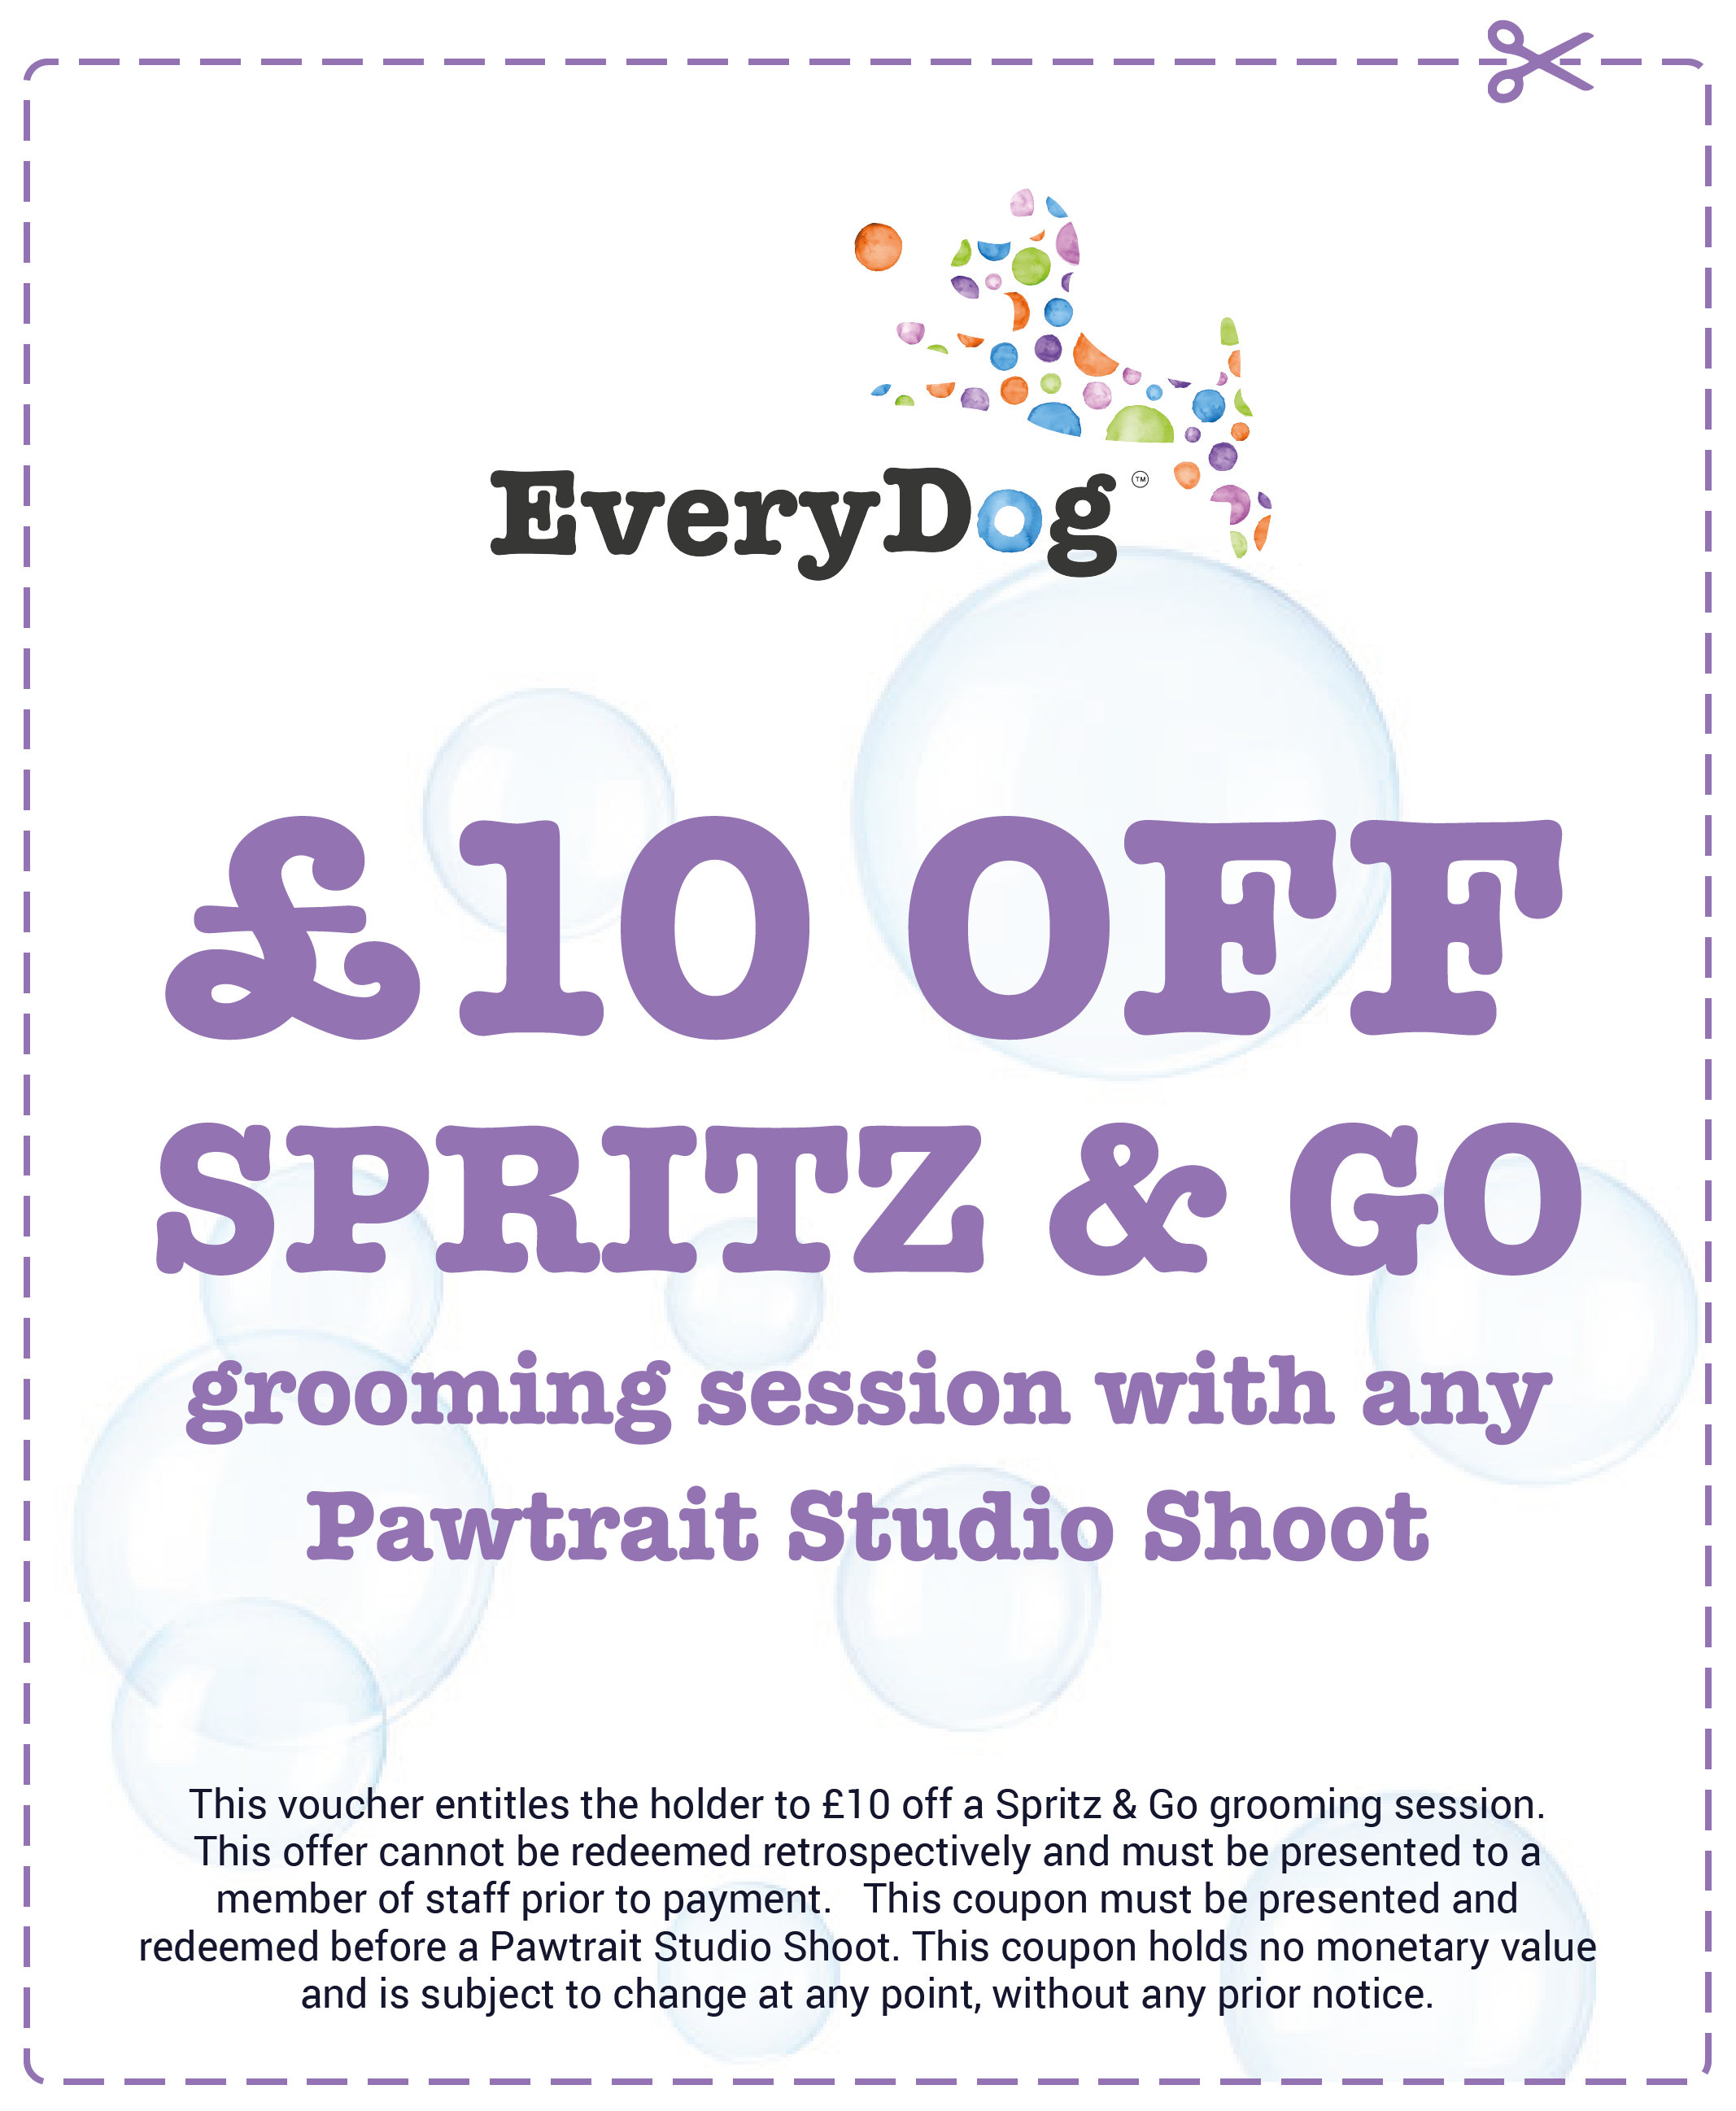 EveryDog £10 Off Grooming Voucher and Coupon